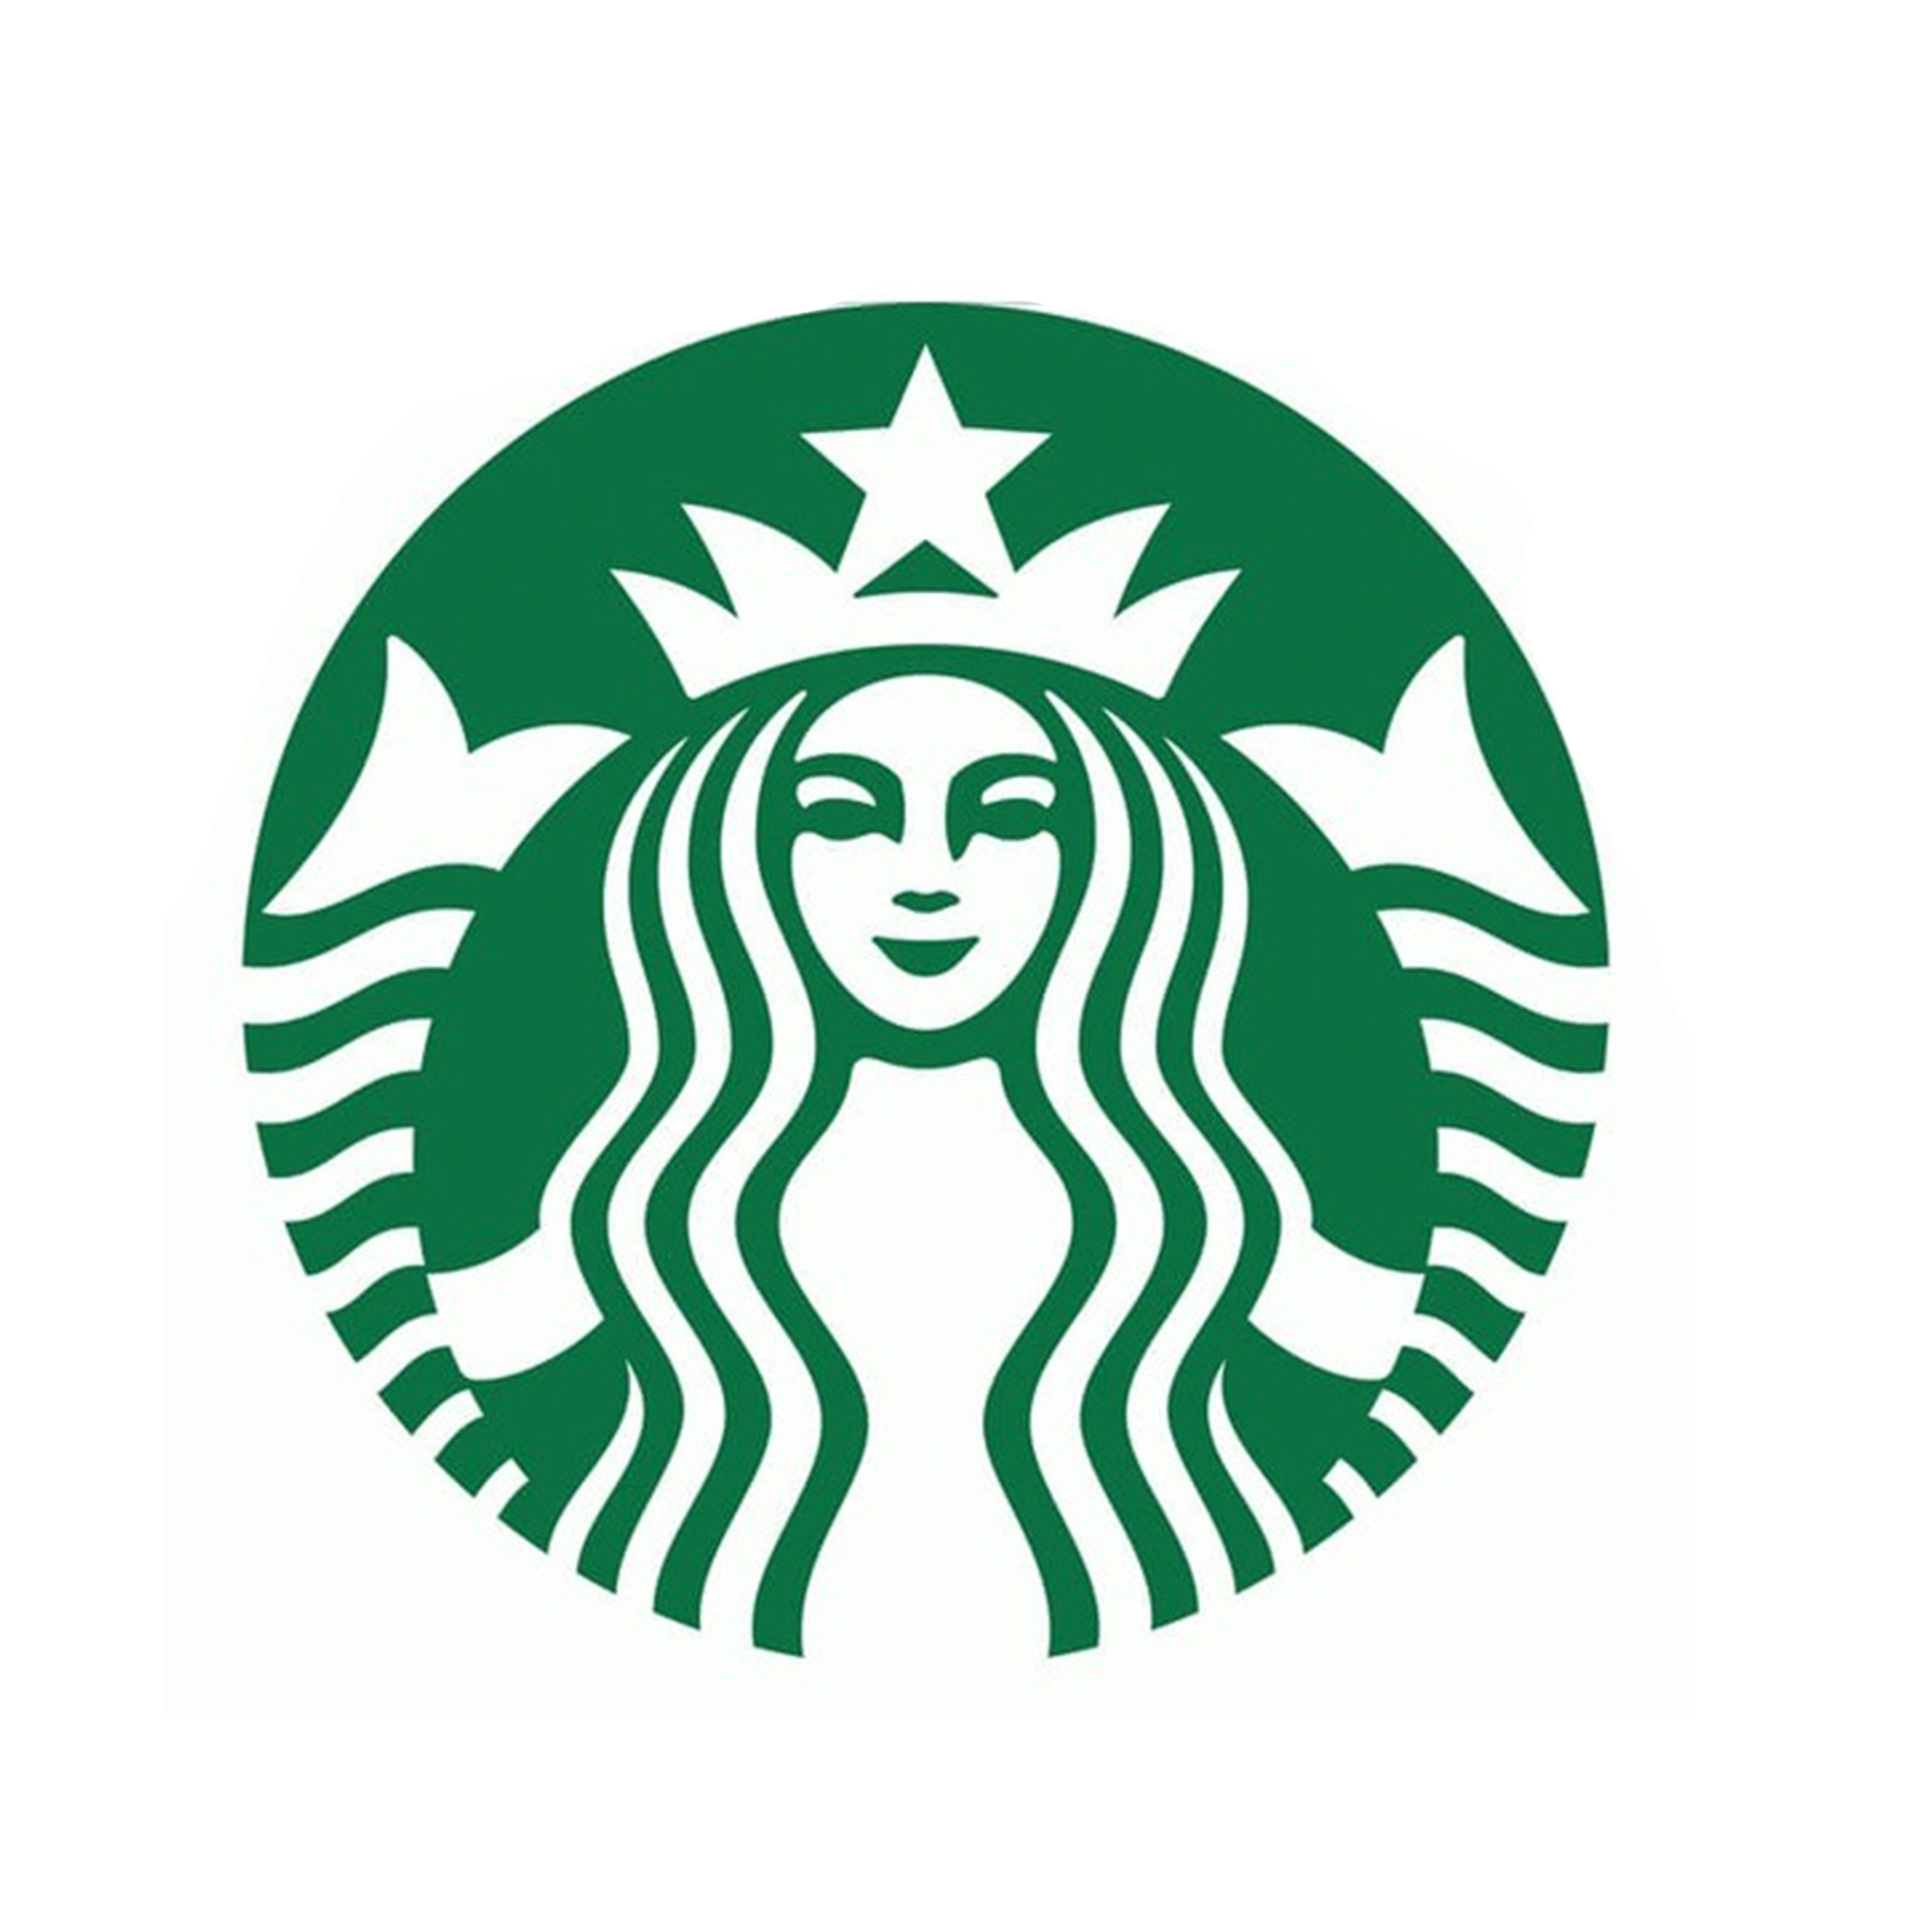 starbucks_featured_image-1